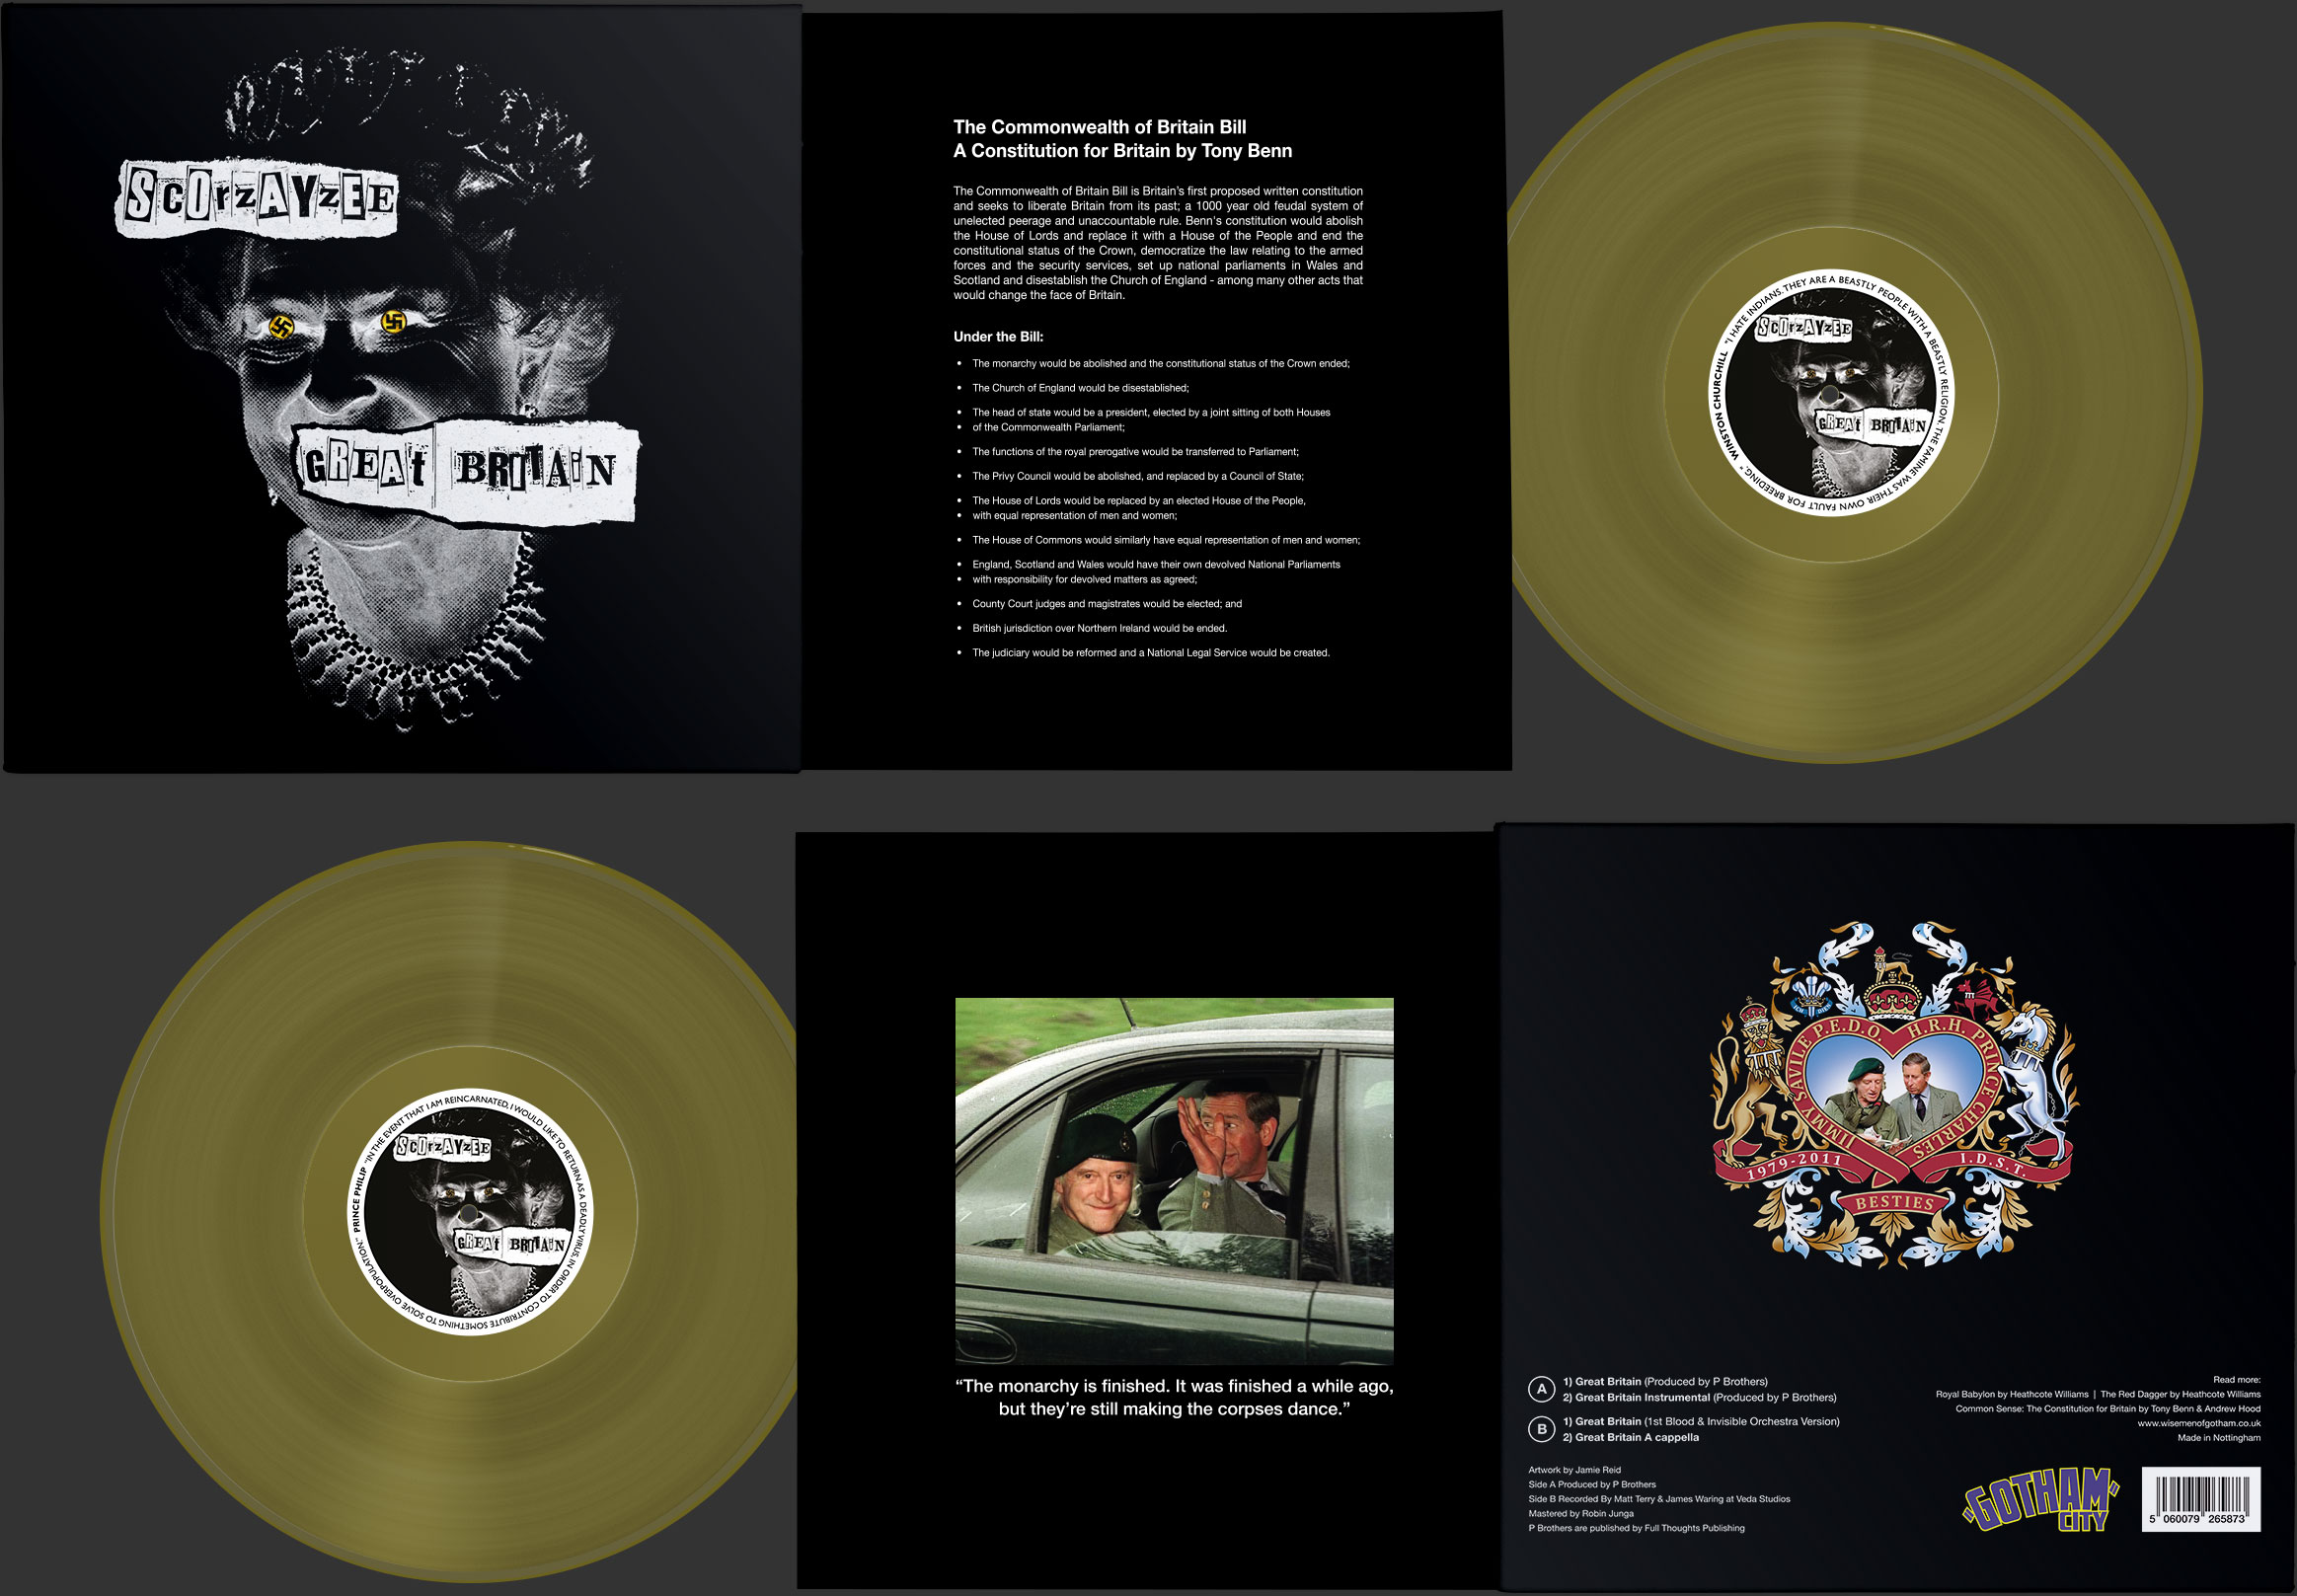 Great Britain Limited Edition Deluxe Vinyl